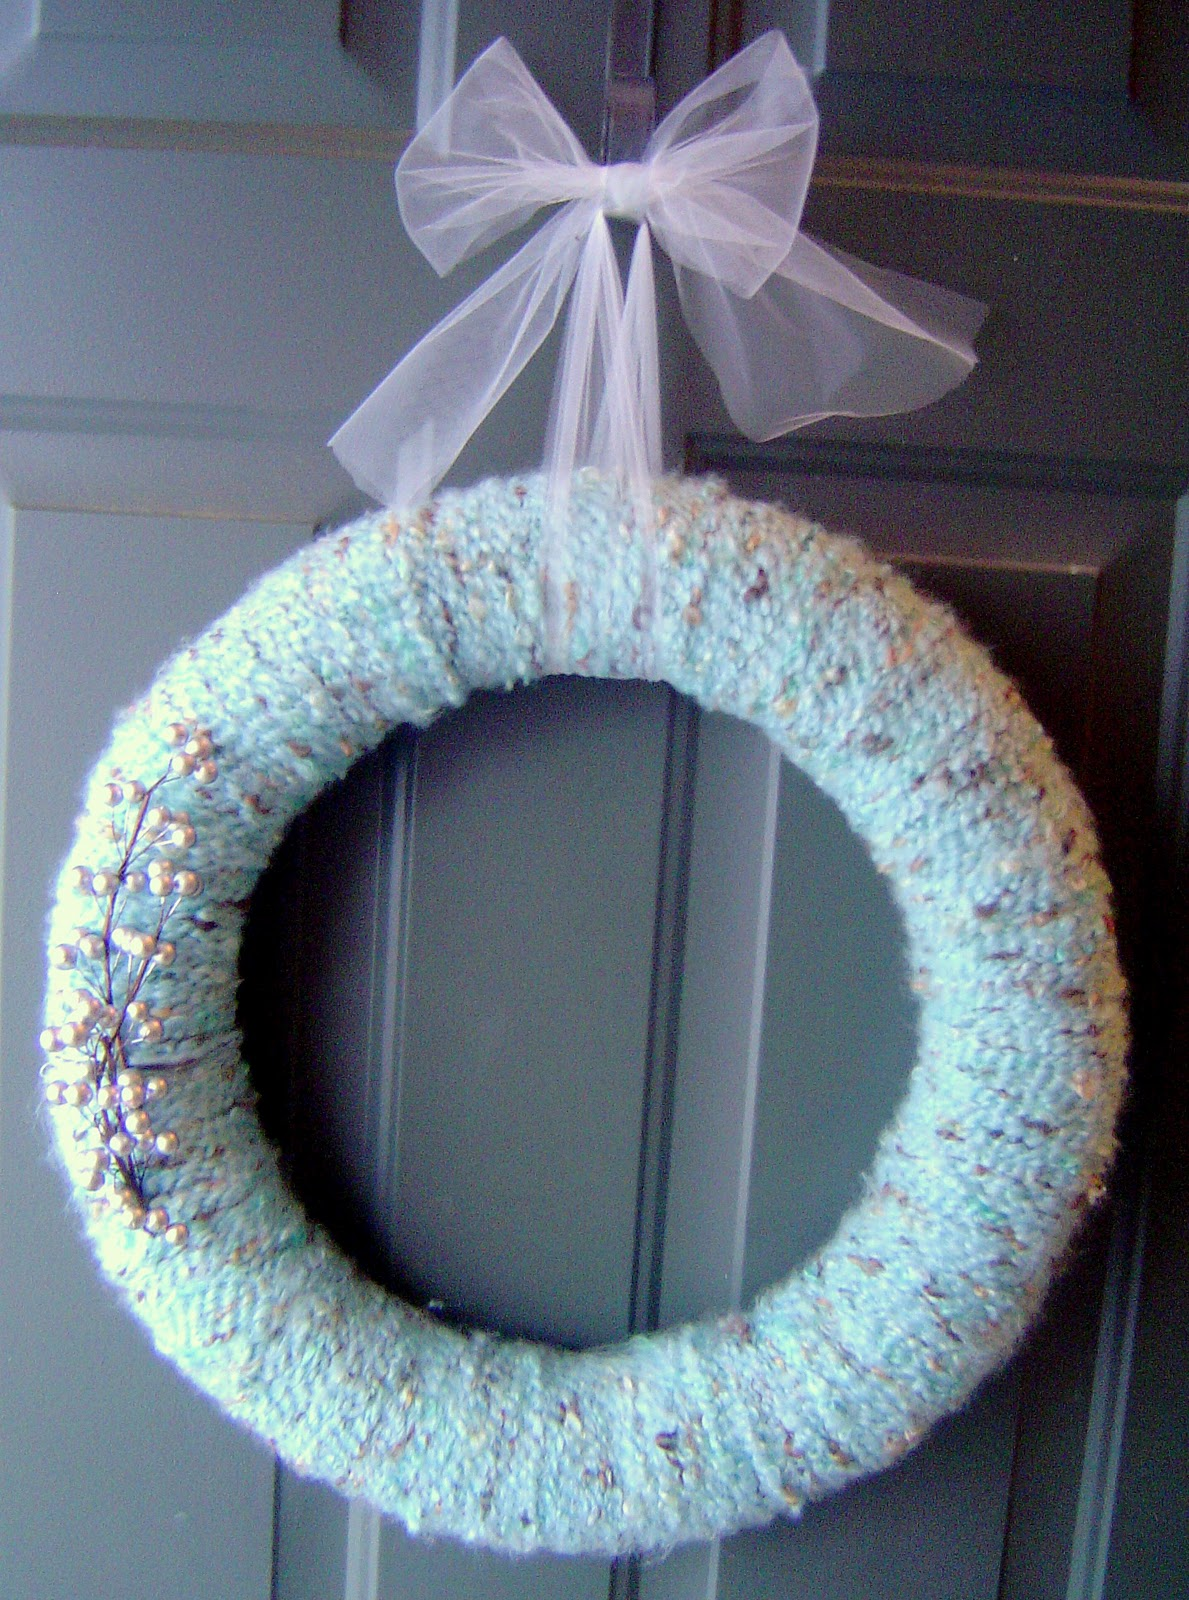 My Yarn Wreath No Knitting Or Sewing Involved Promise